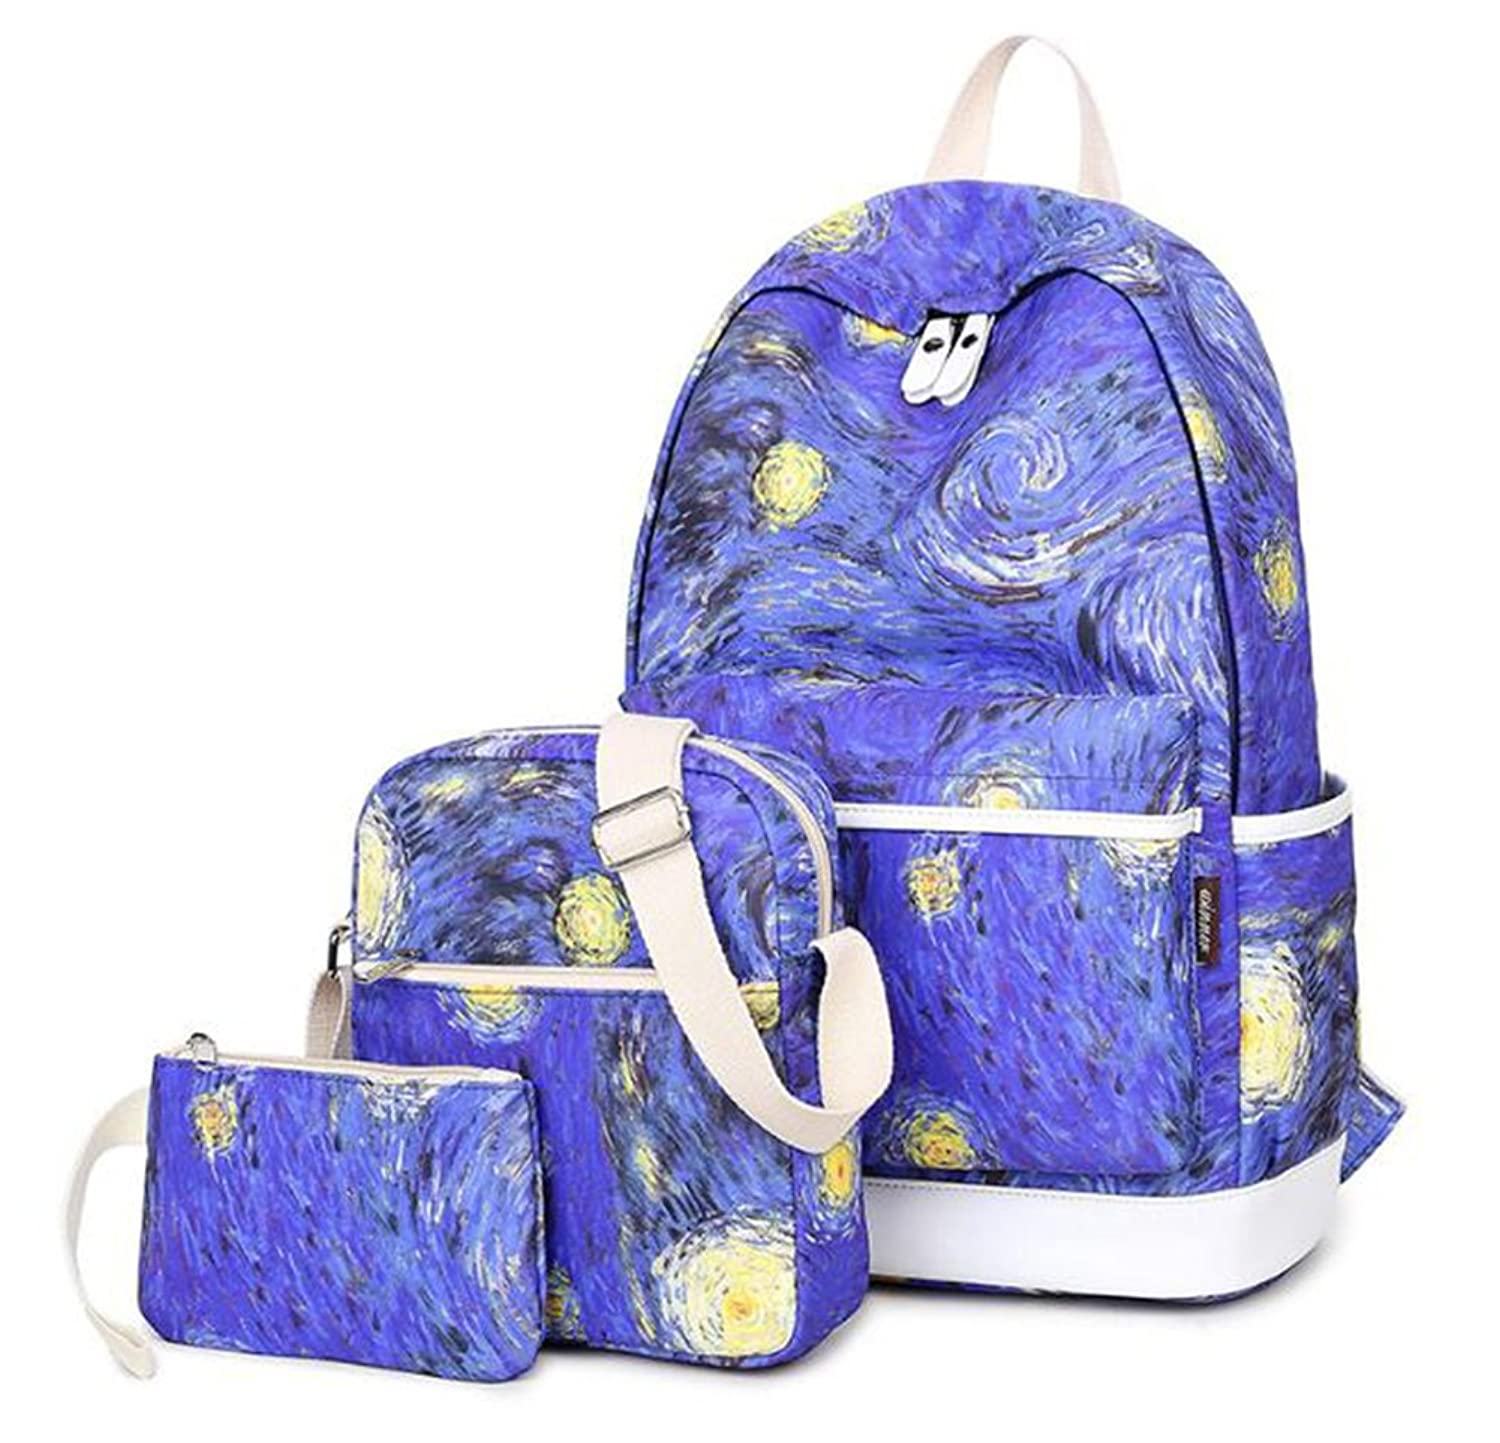 Cute School backpack Purse Set lightweight 14inch Laptop Bookbags for Teen Girls